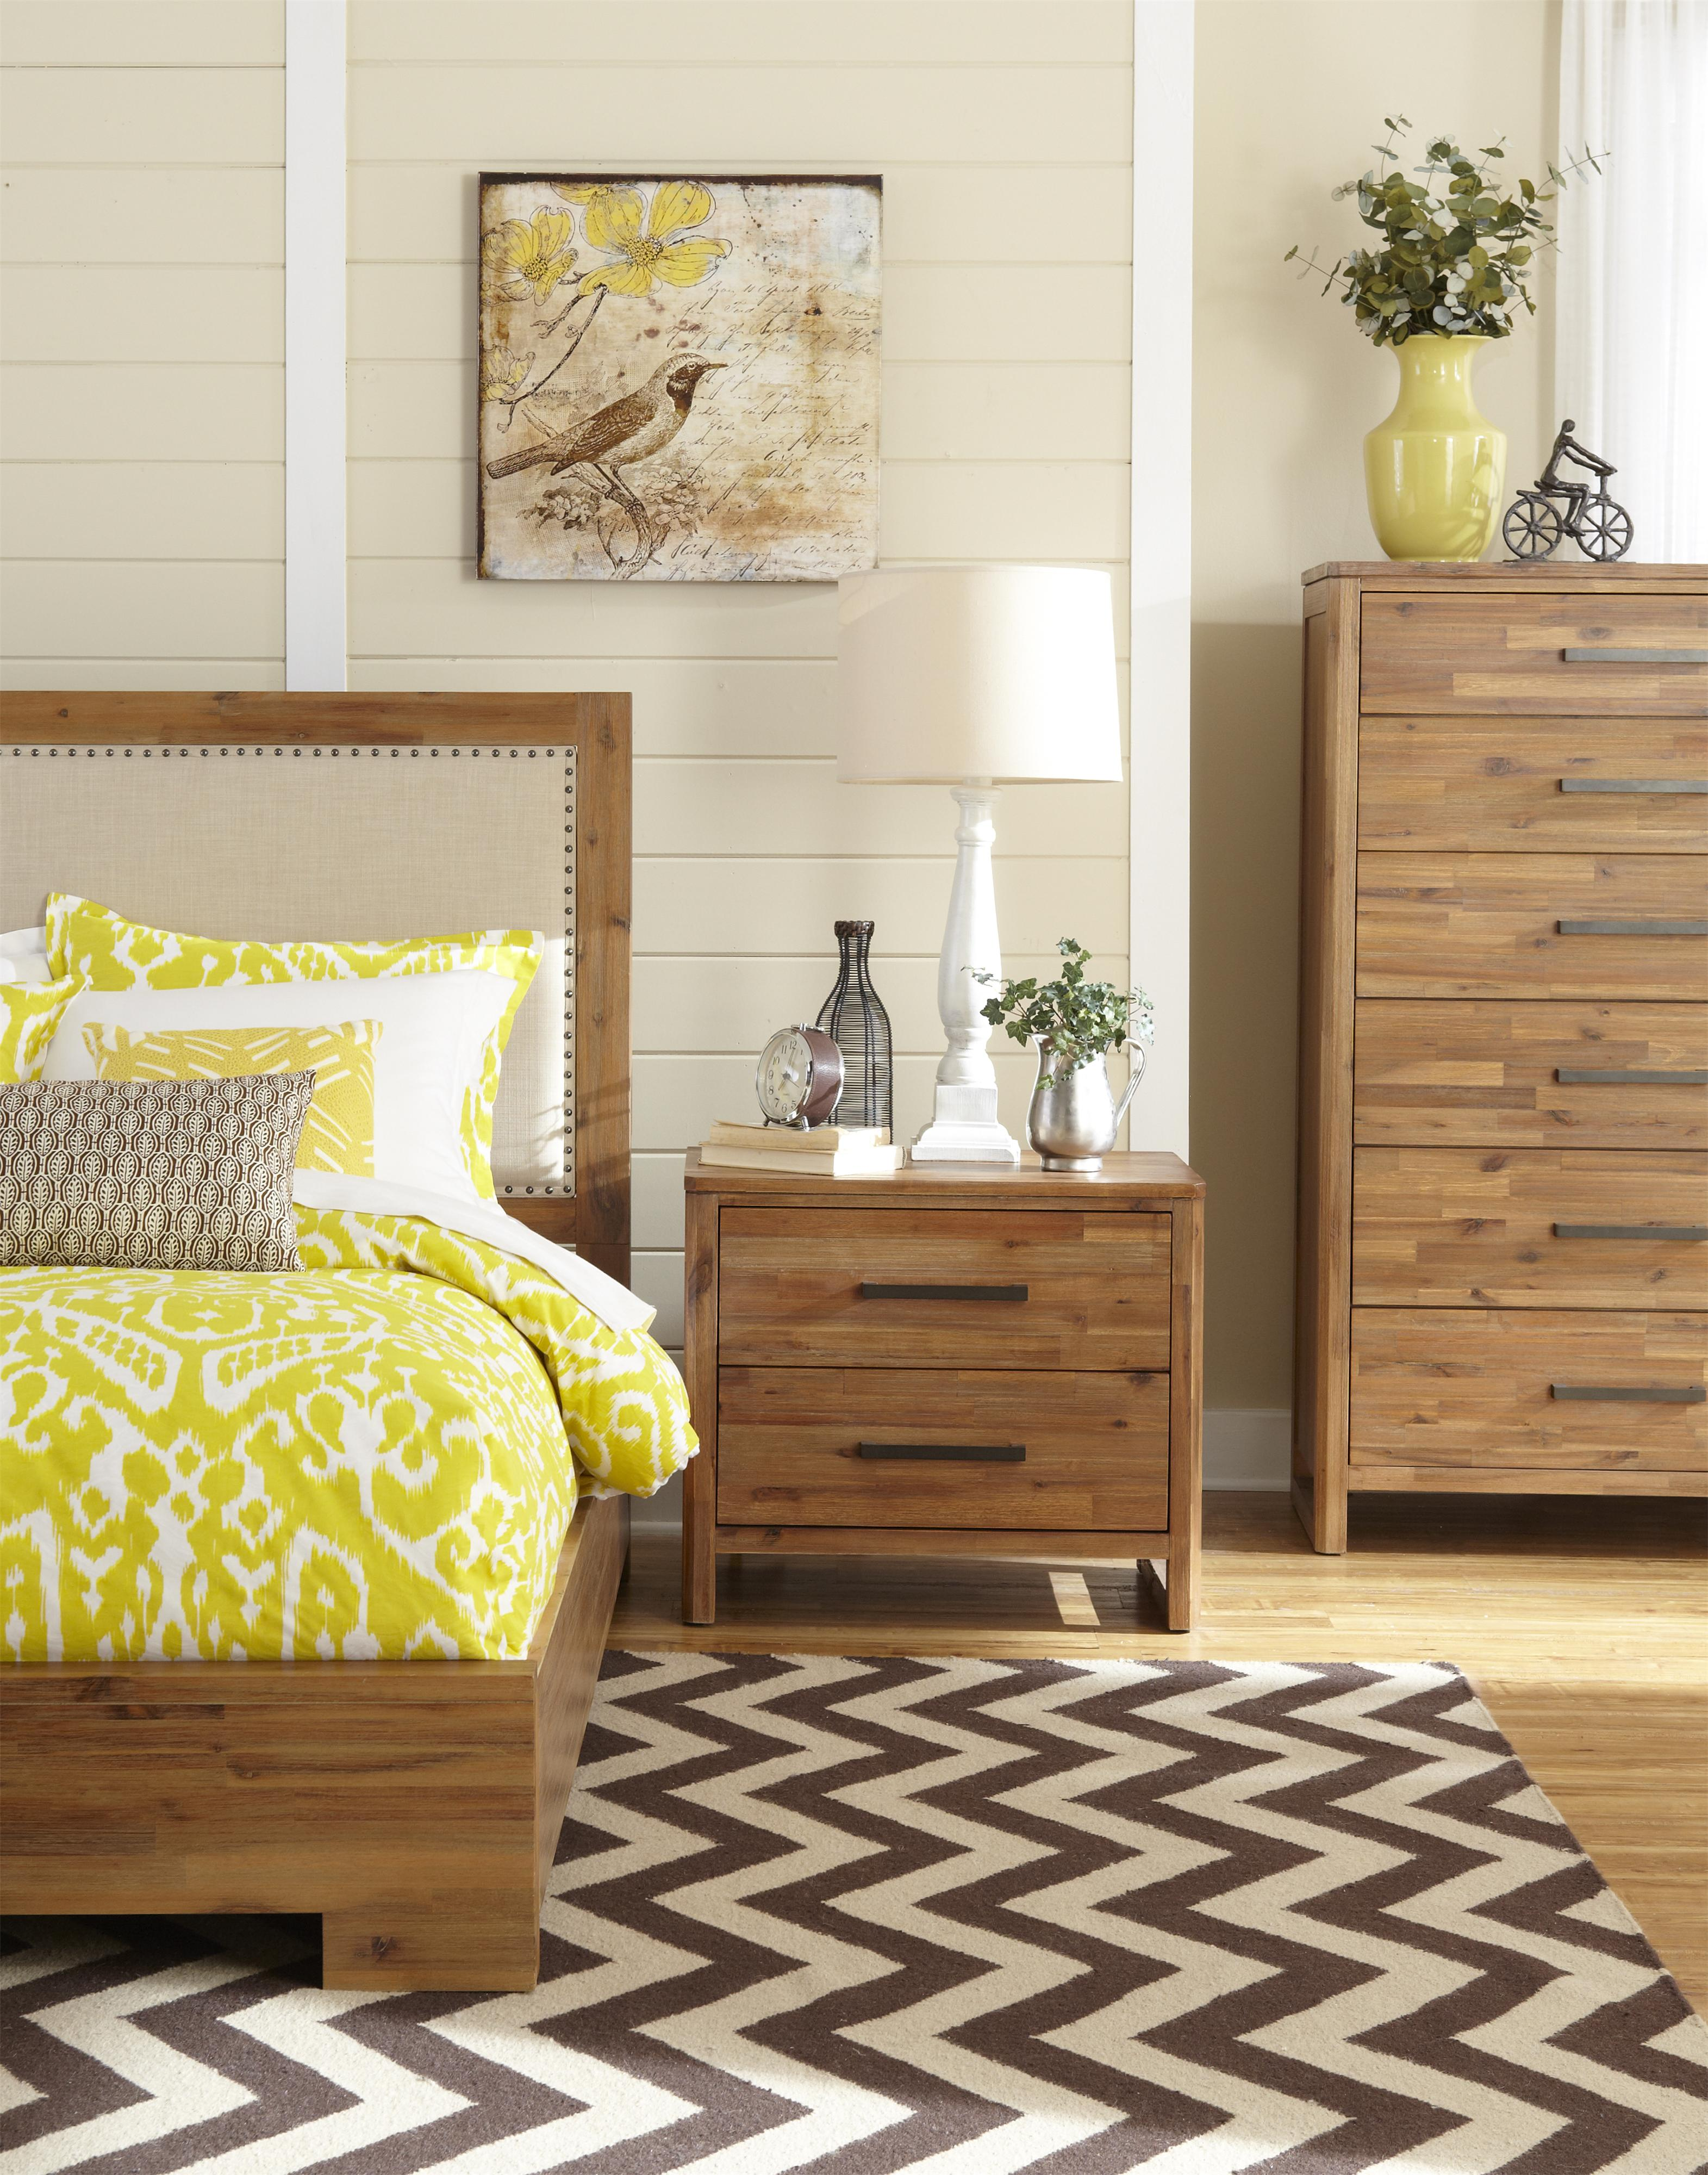 Cresent Fine Furniture Waverly Cal King Bedroom Group - Item Number: 5500 CK Bedroom Group 3